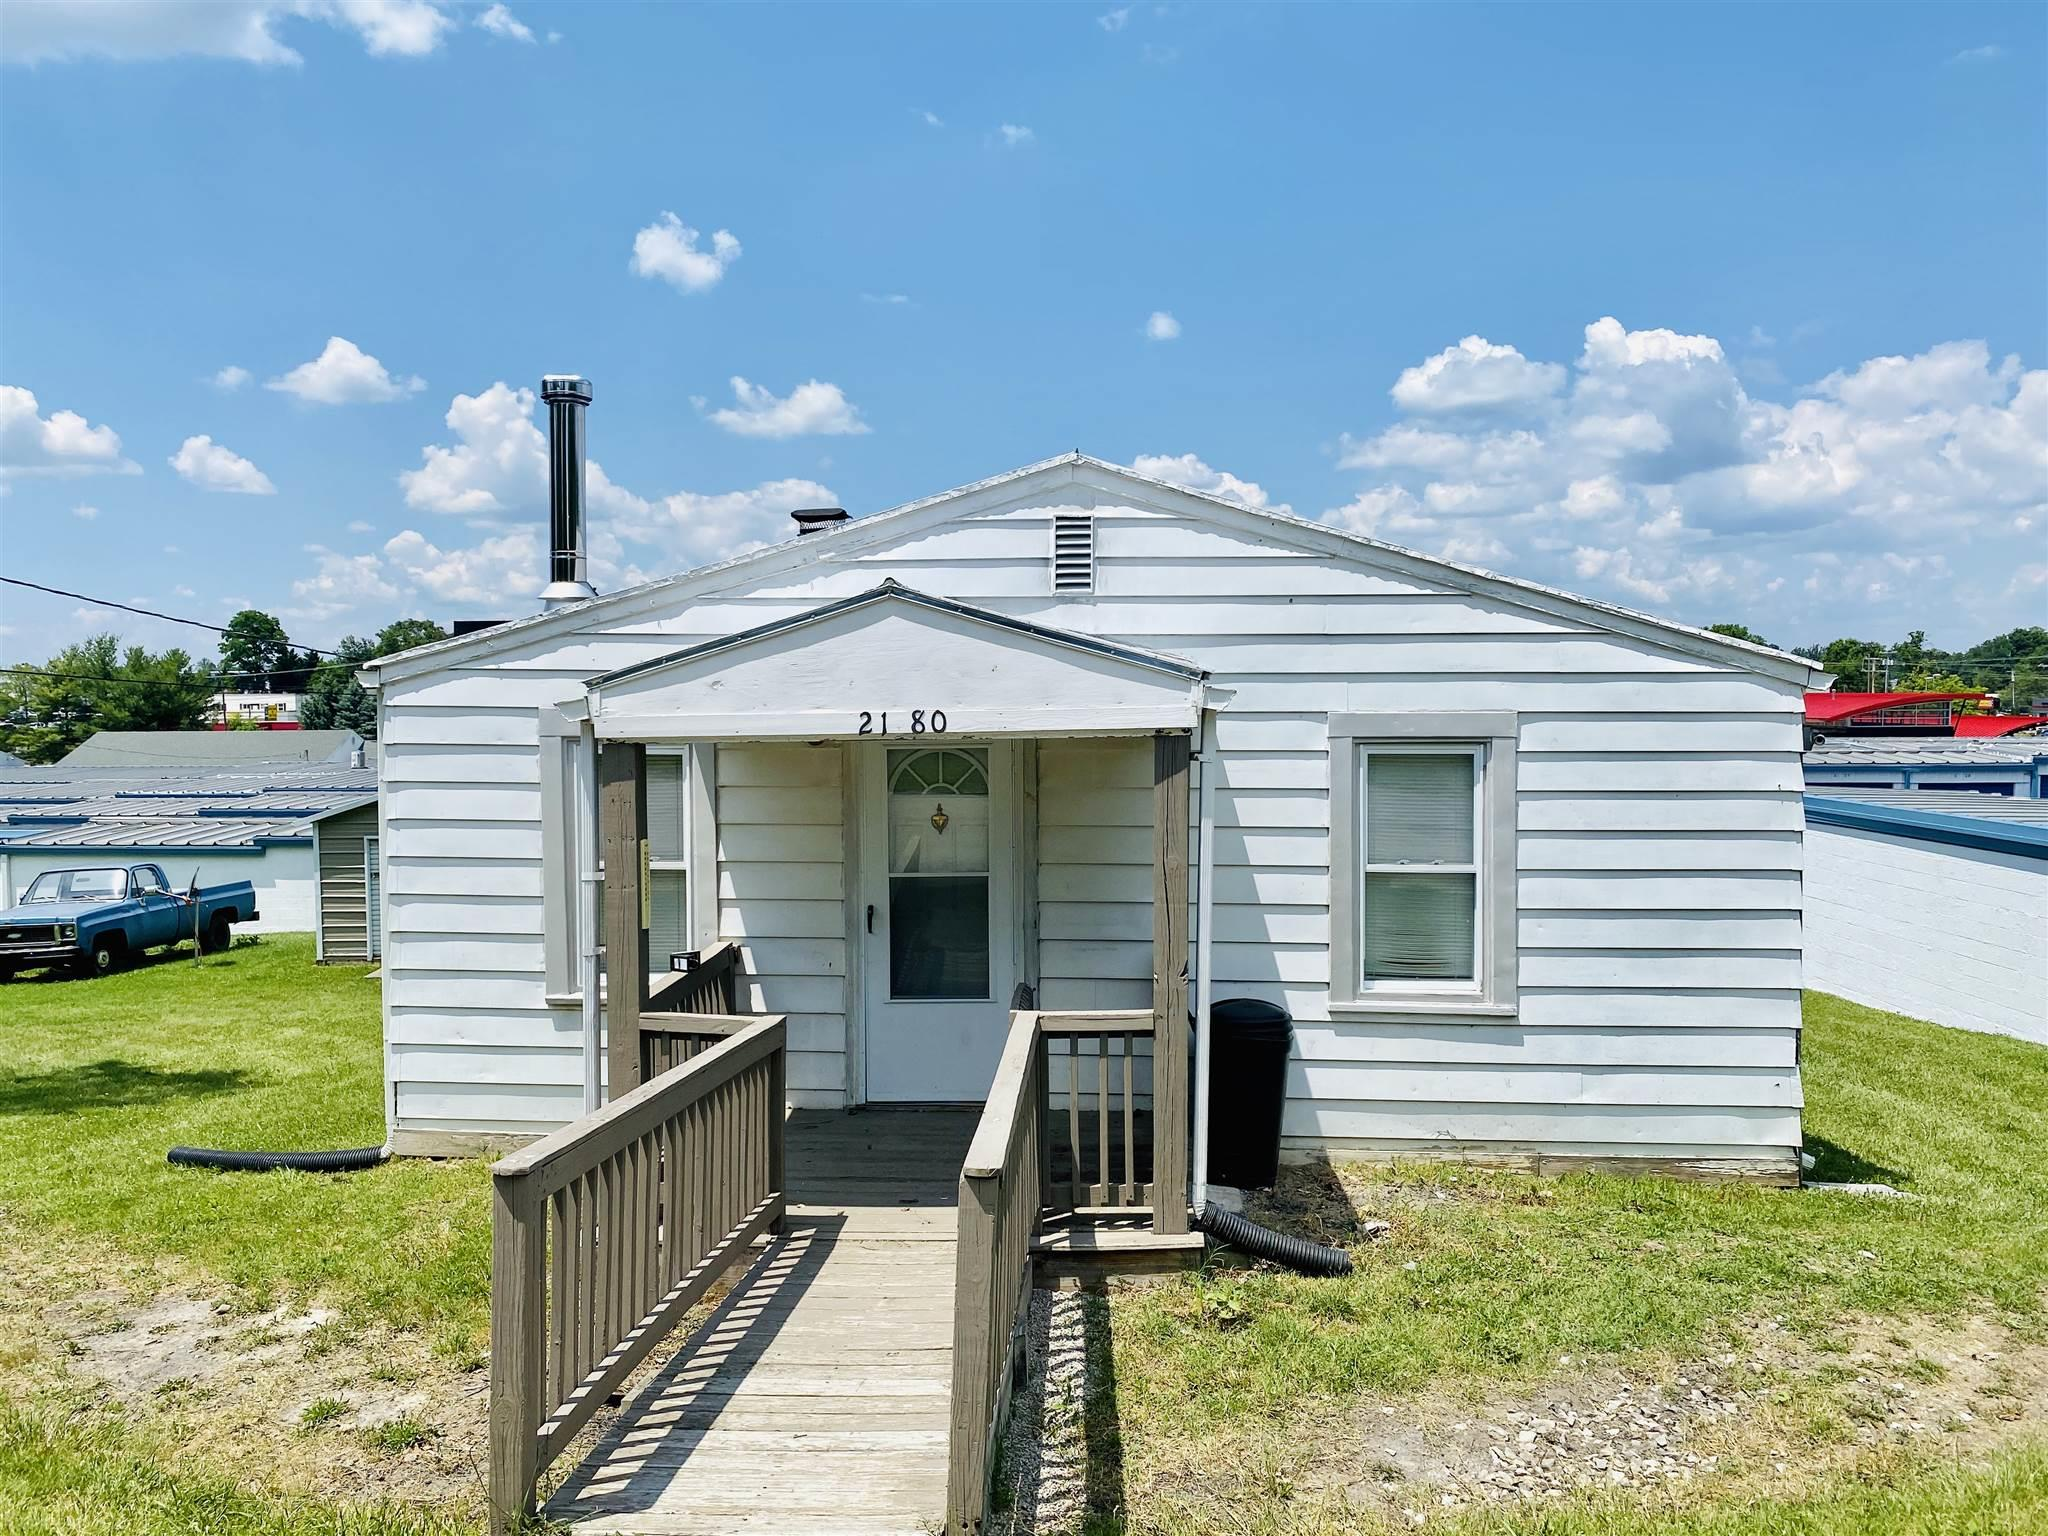 2 bedroom home with hardwood floors located on dead end street. Master bedroom with walk in closet. Enclosed back porch with laundry hook ups. Partial basement. Double detached garage with storage. This would be a great property for an investor.